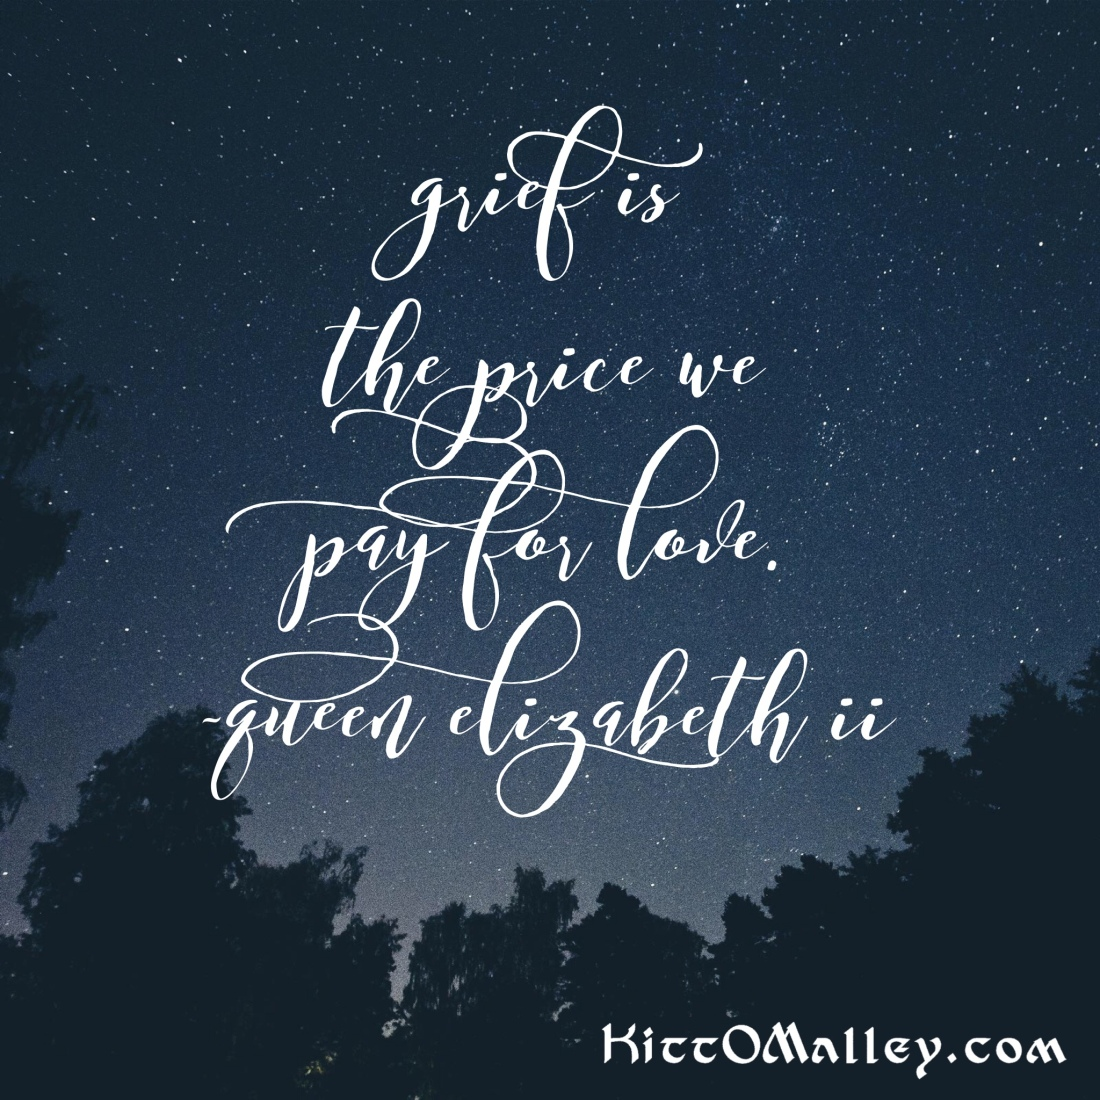 Grief is the price we pay for love. —Queen Elizabeth II. Meme by KittO'Malley.com